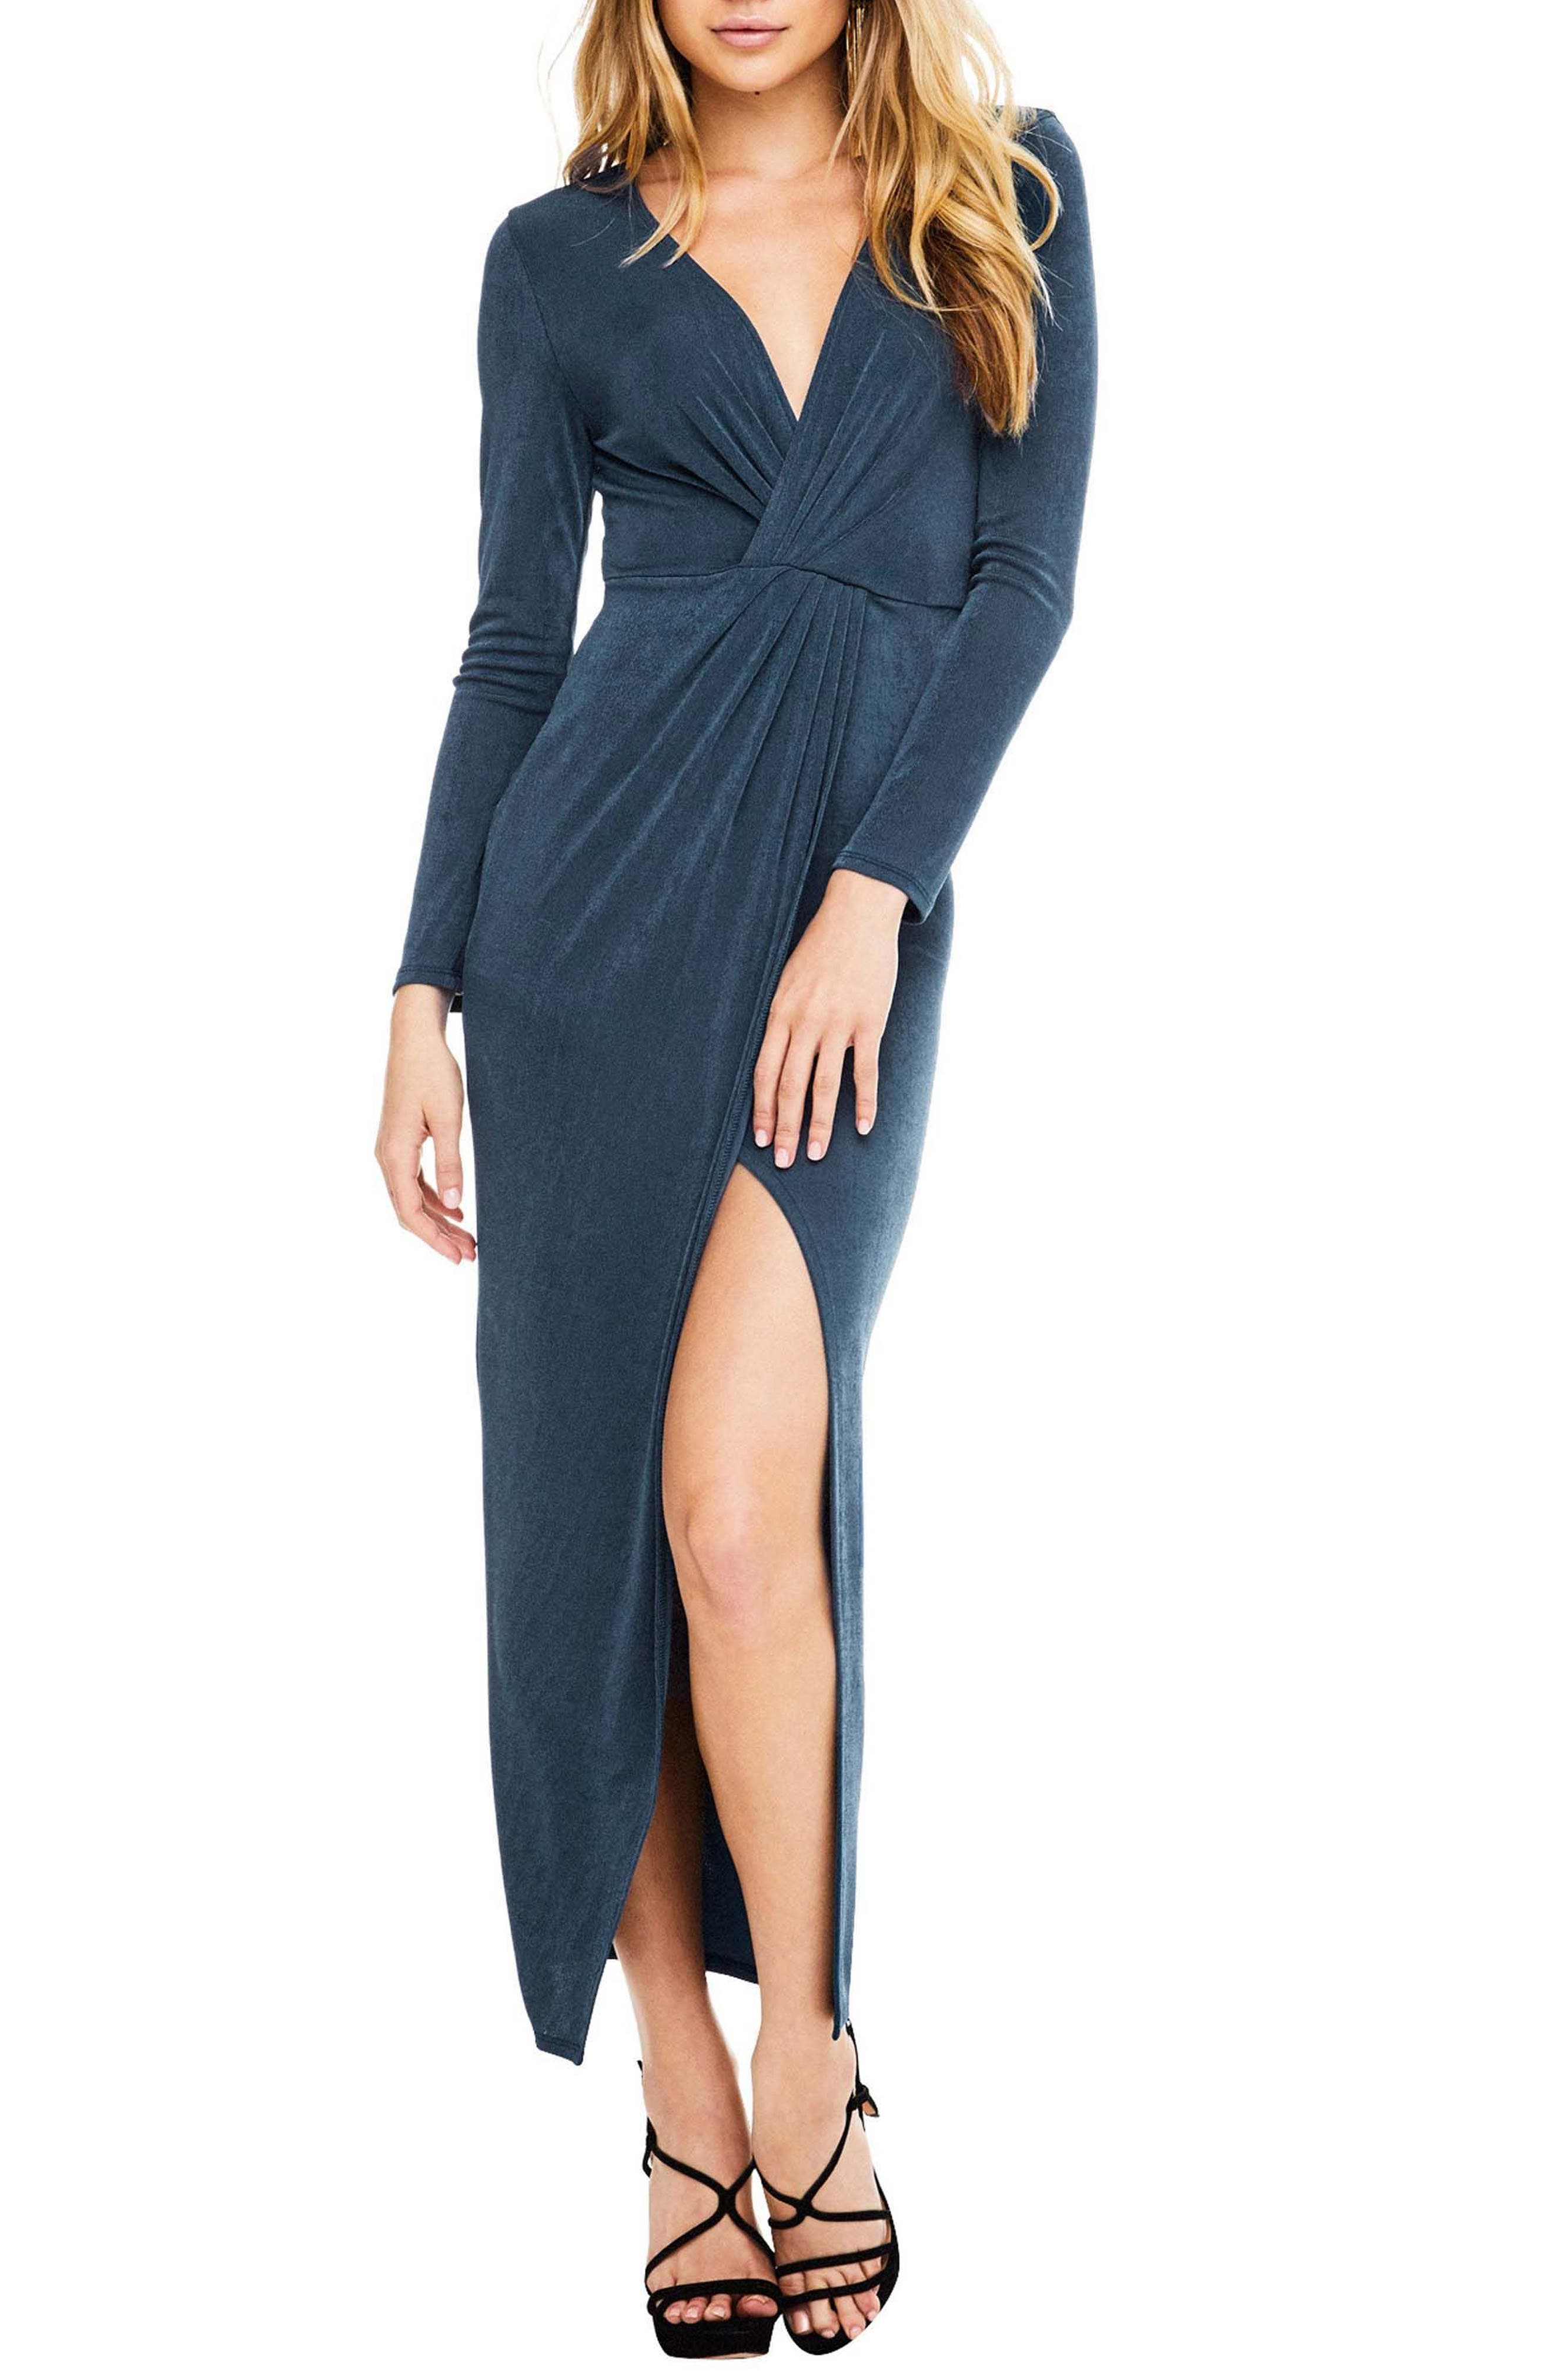 Alternate Image 1 Selected - ASTR the Label Valerie Faux Wrap Dress